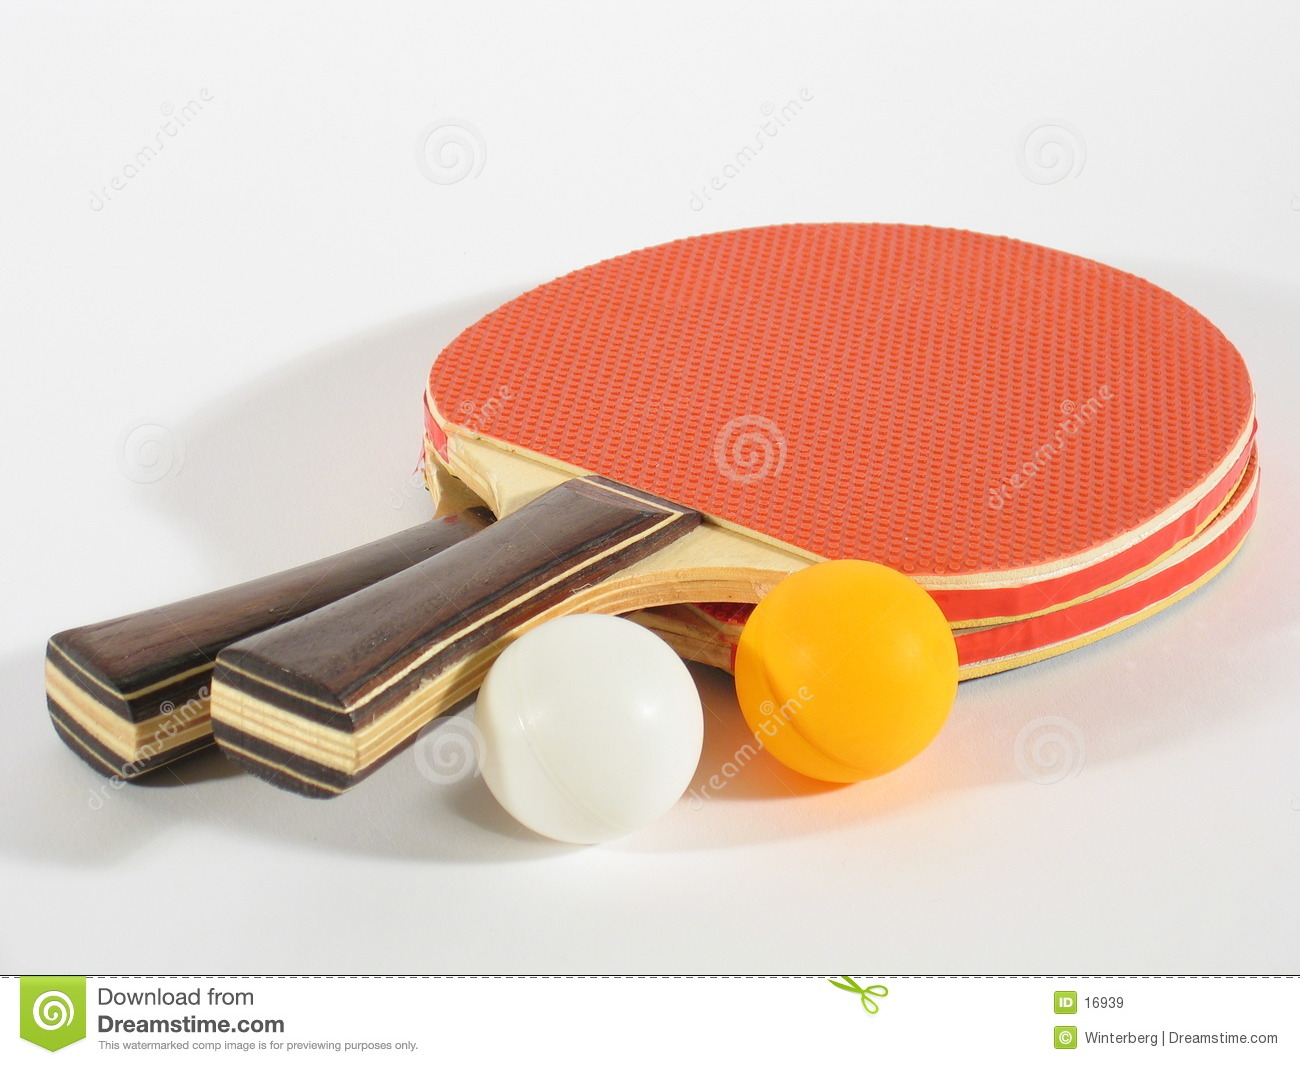 Cremagliere di ping-pong